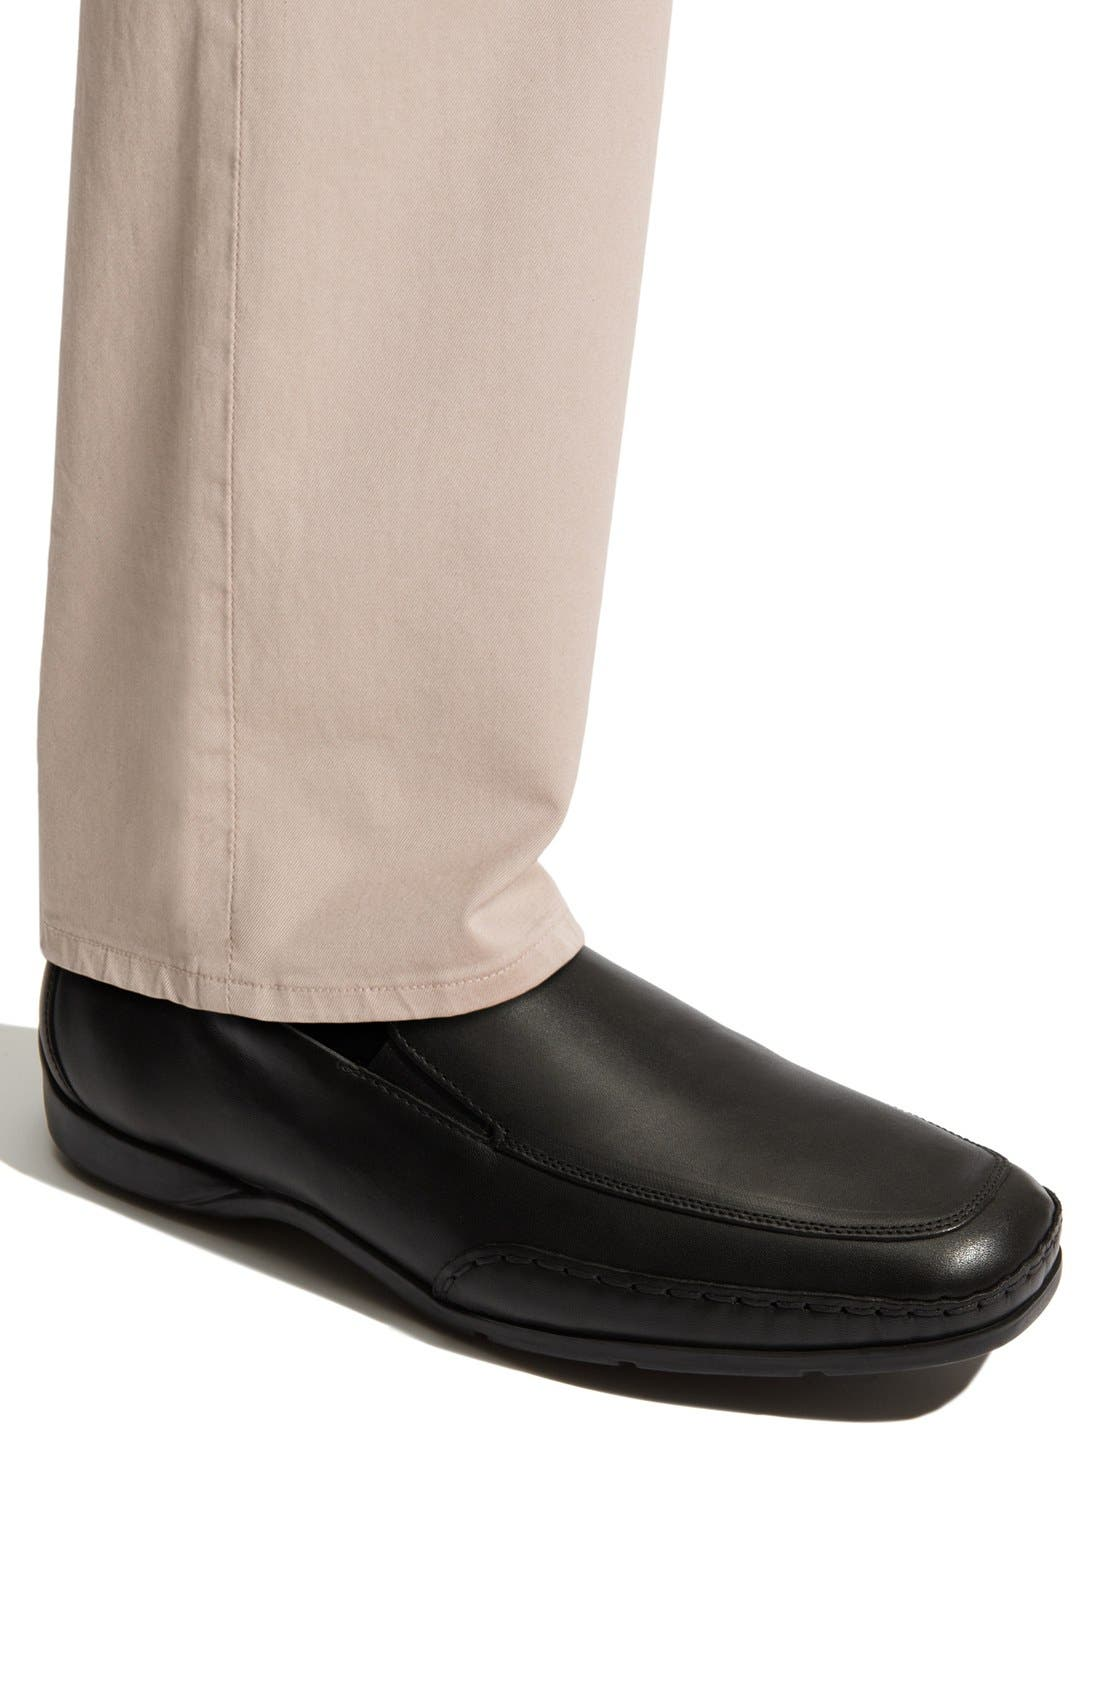 'Edlef' Slip-On,                             Alternate thumbnail 10, color,                             BLACK SMOOTH LEATHER